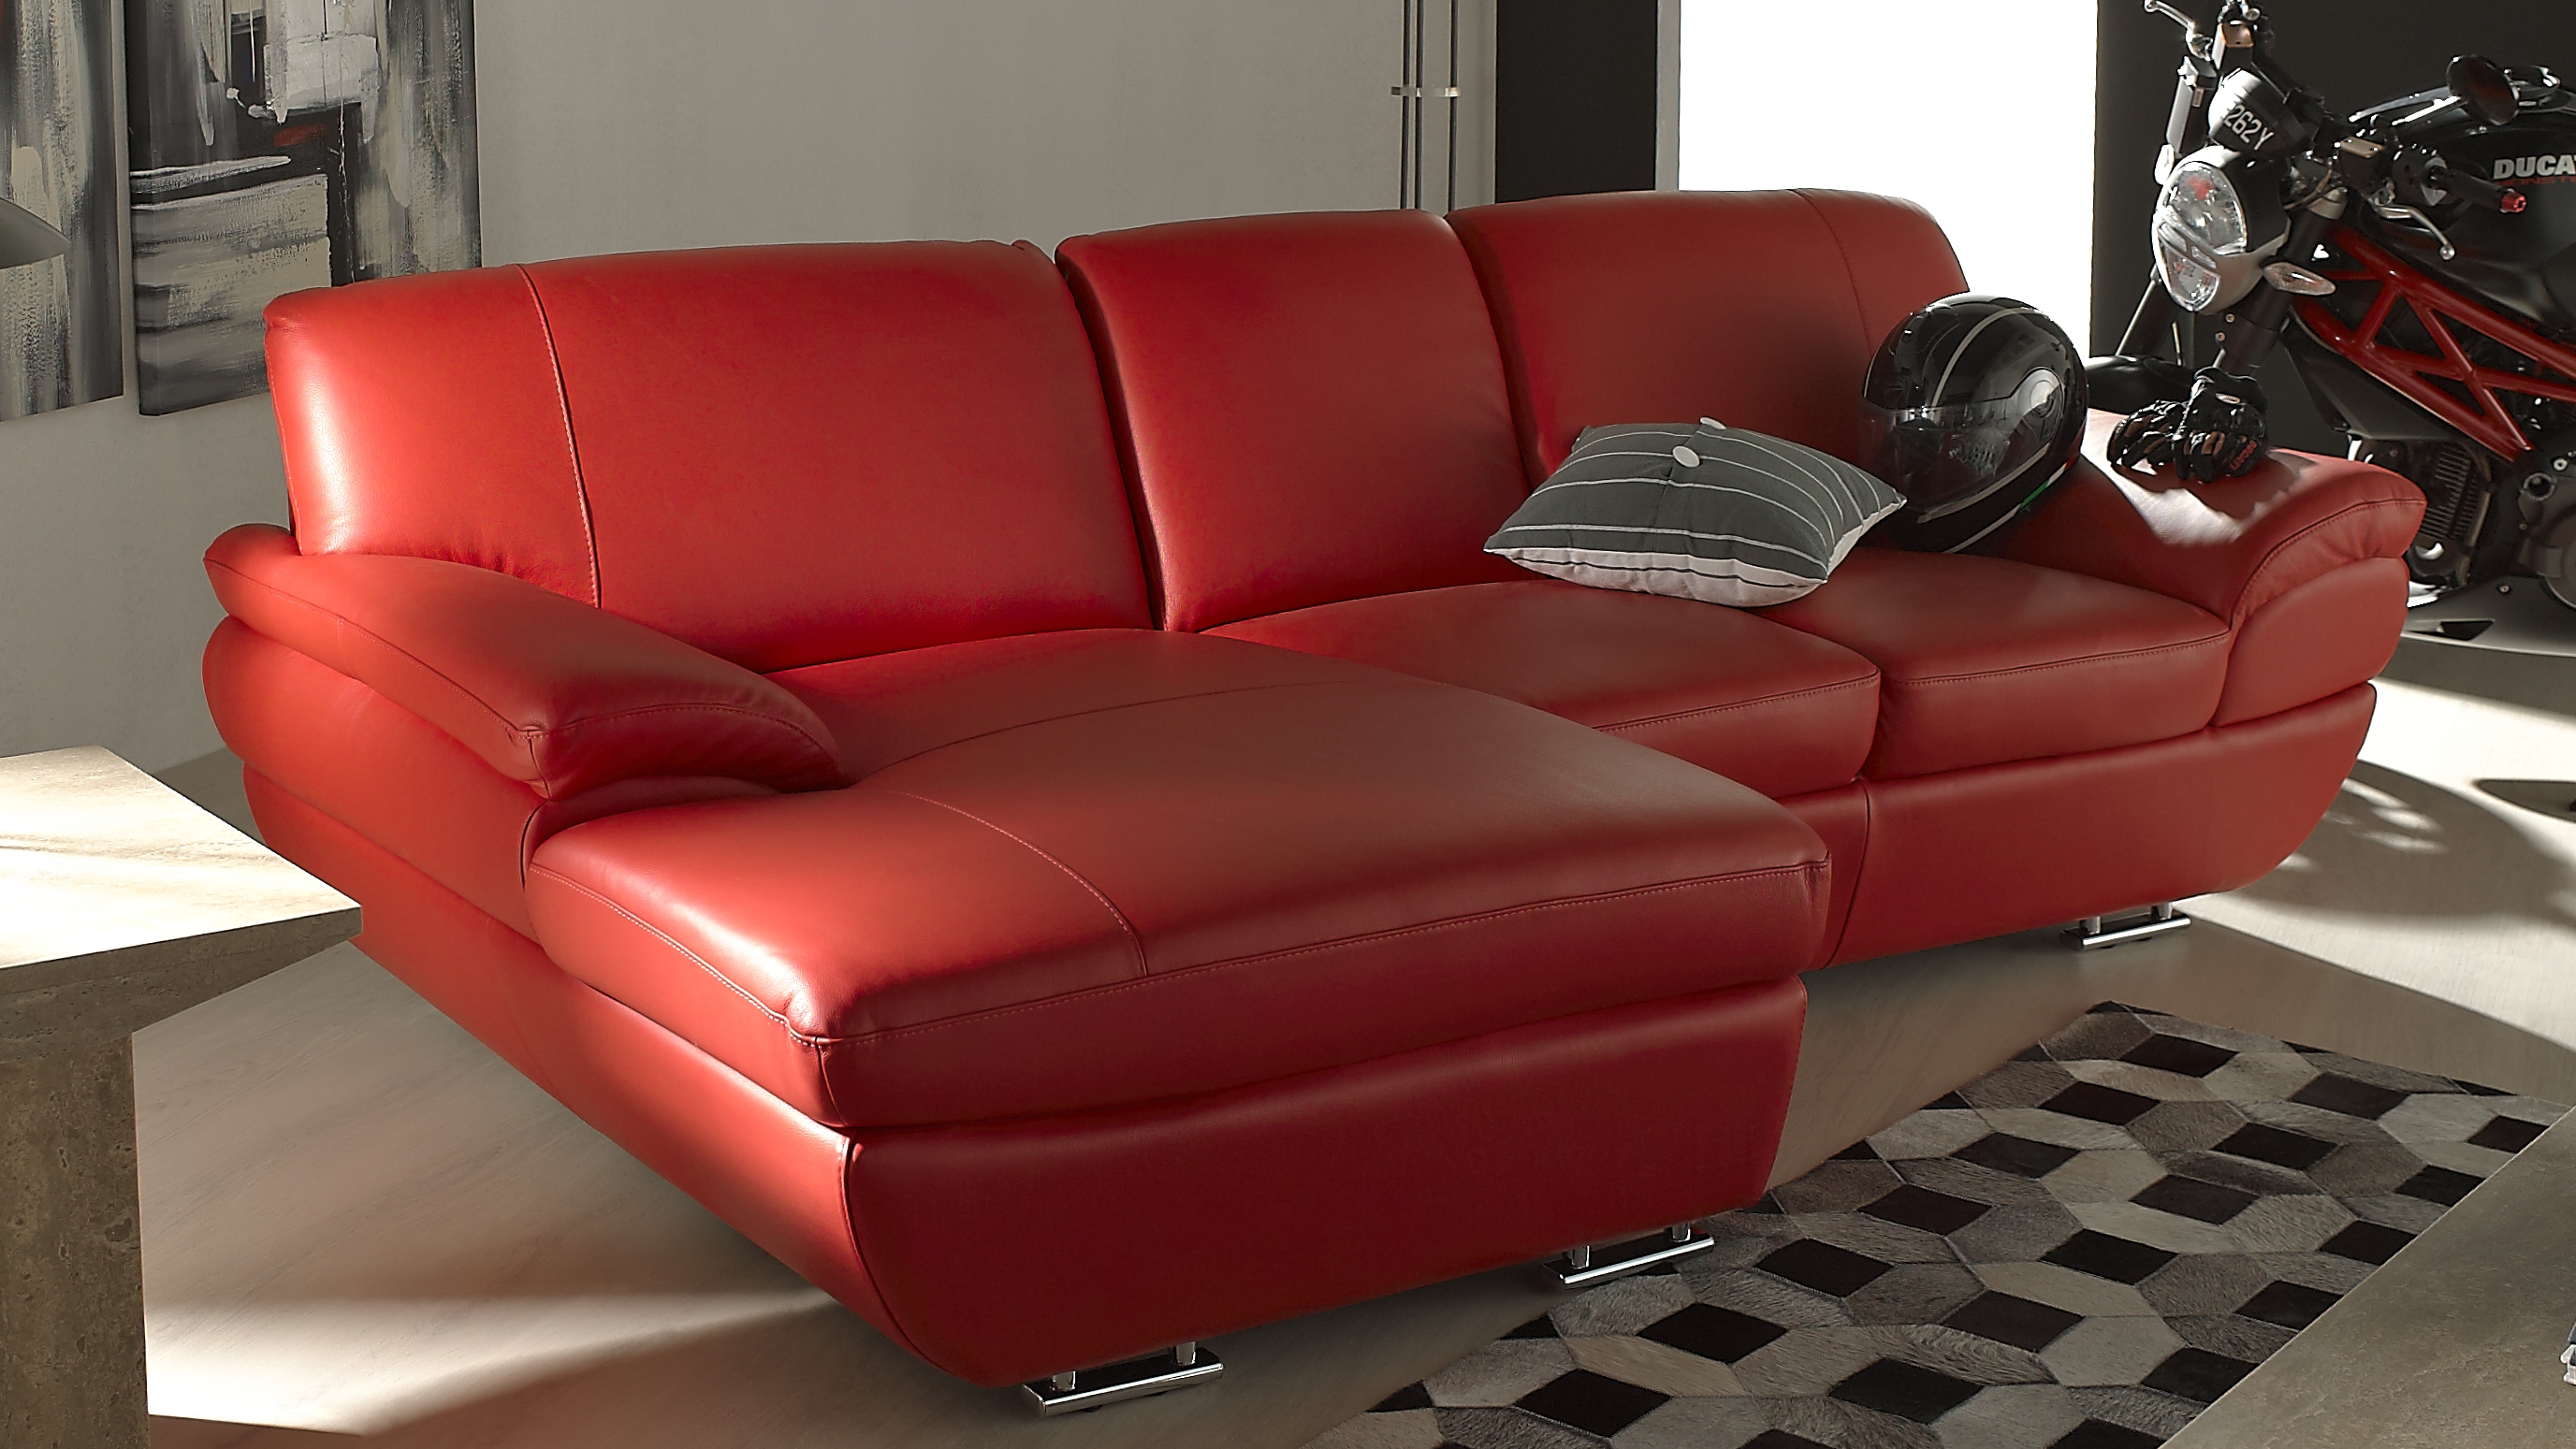 Saporini marta full leather 2 seater sofa with chaise for Sofa with 2 chaise lounge